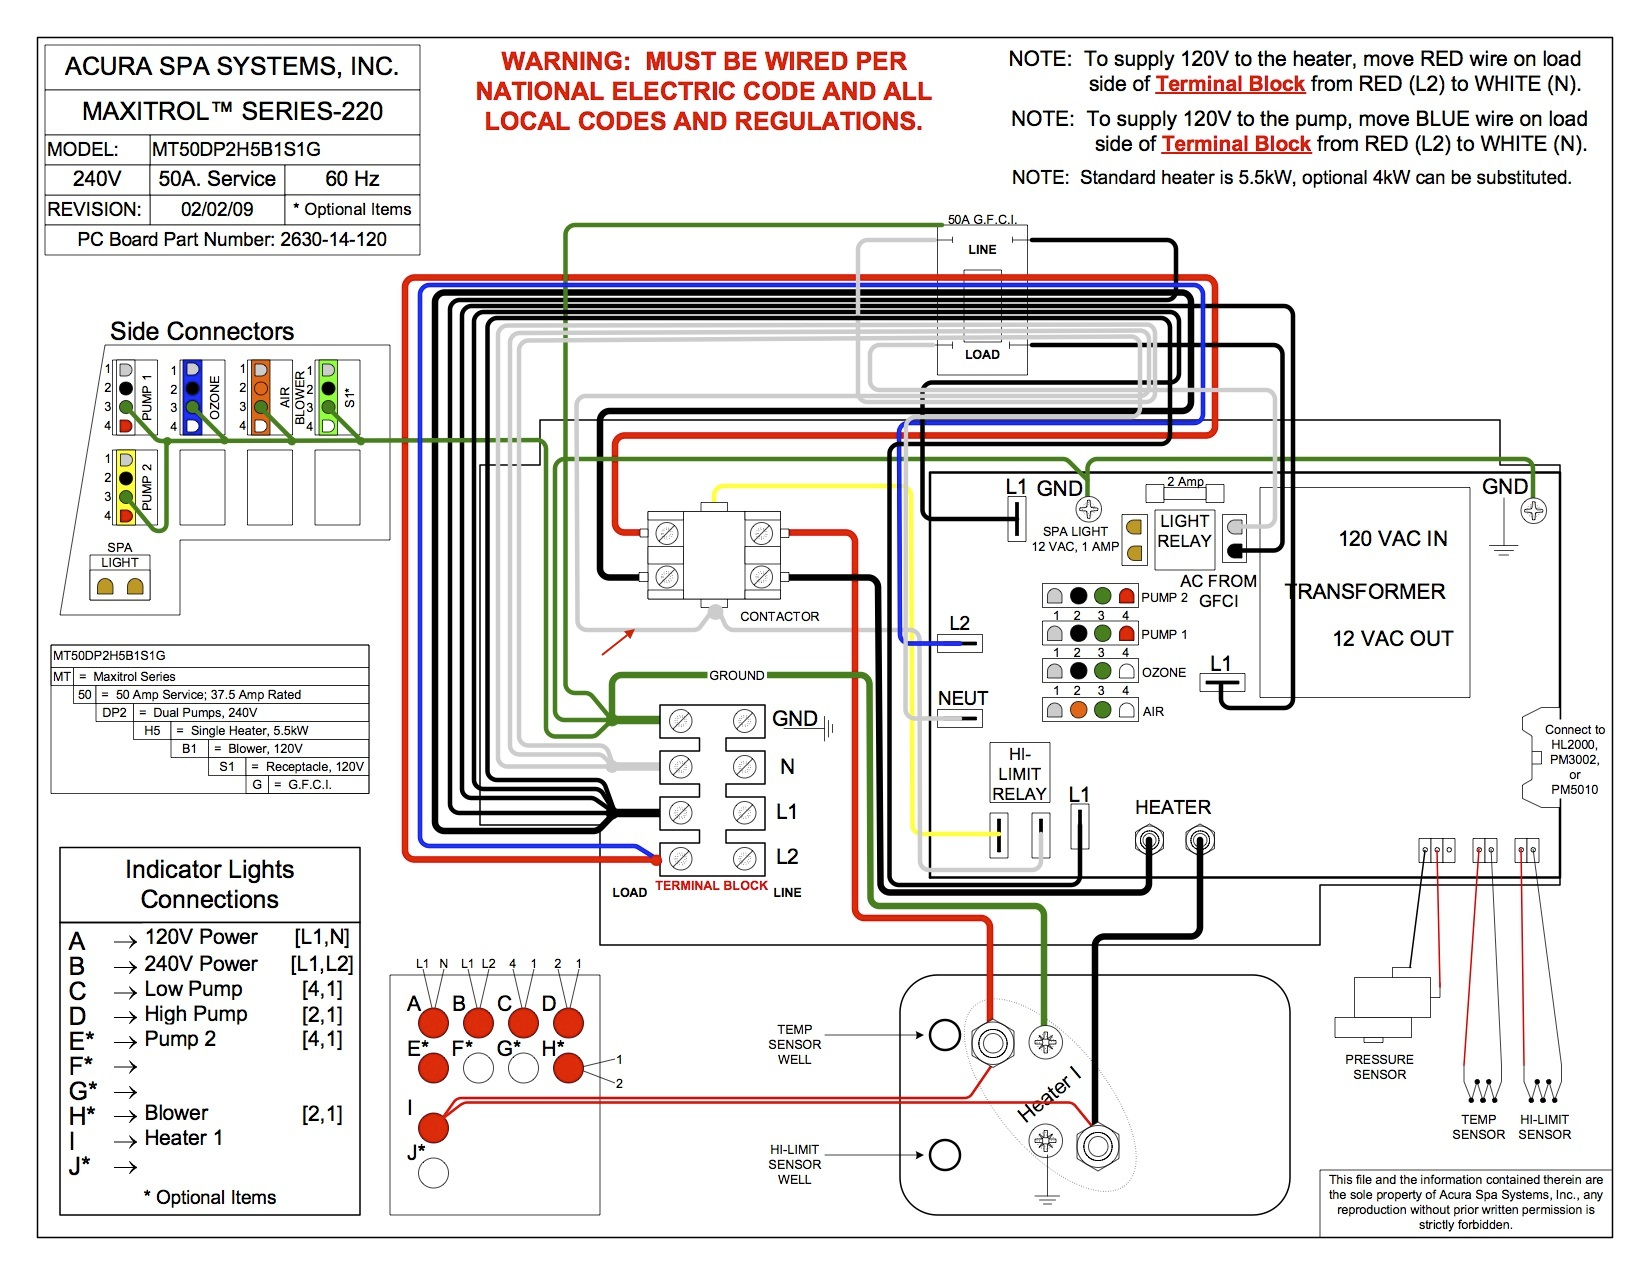 typical wiring diagrams swimming pool wiring diagram libraries jacuzzi wiring diagram wiring diagram detailed typical wiring diagrams swimming pool